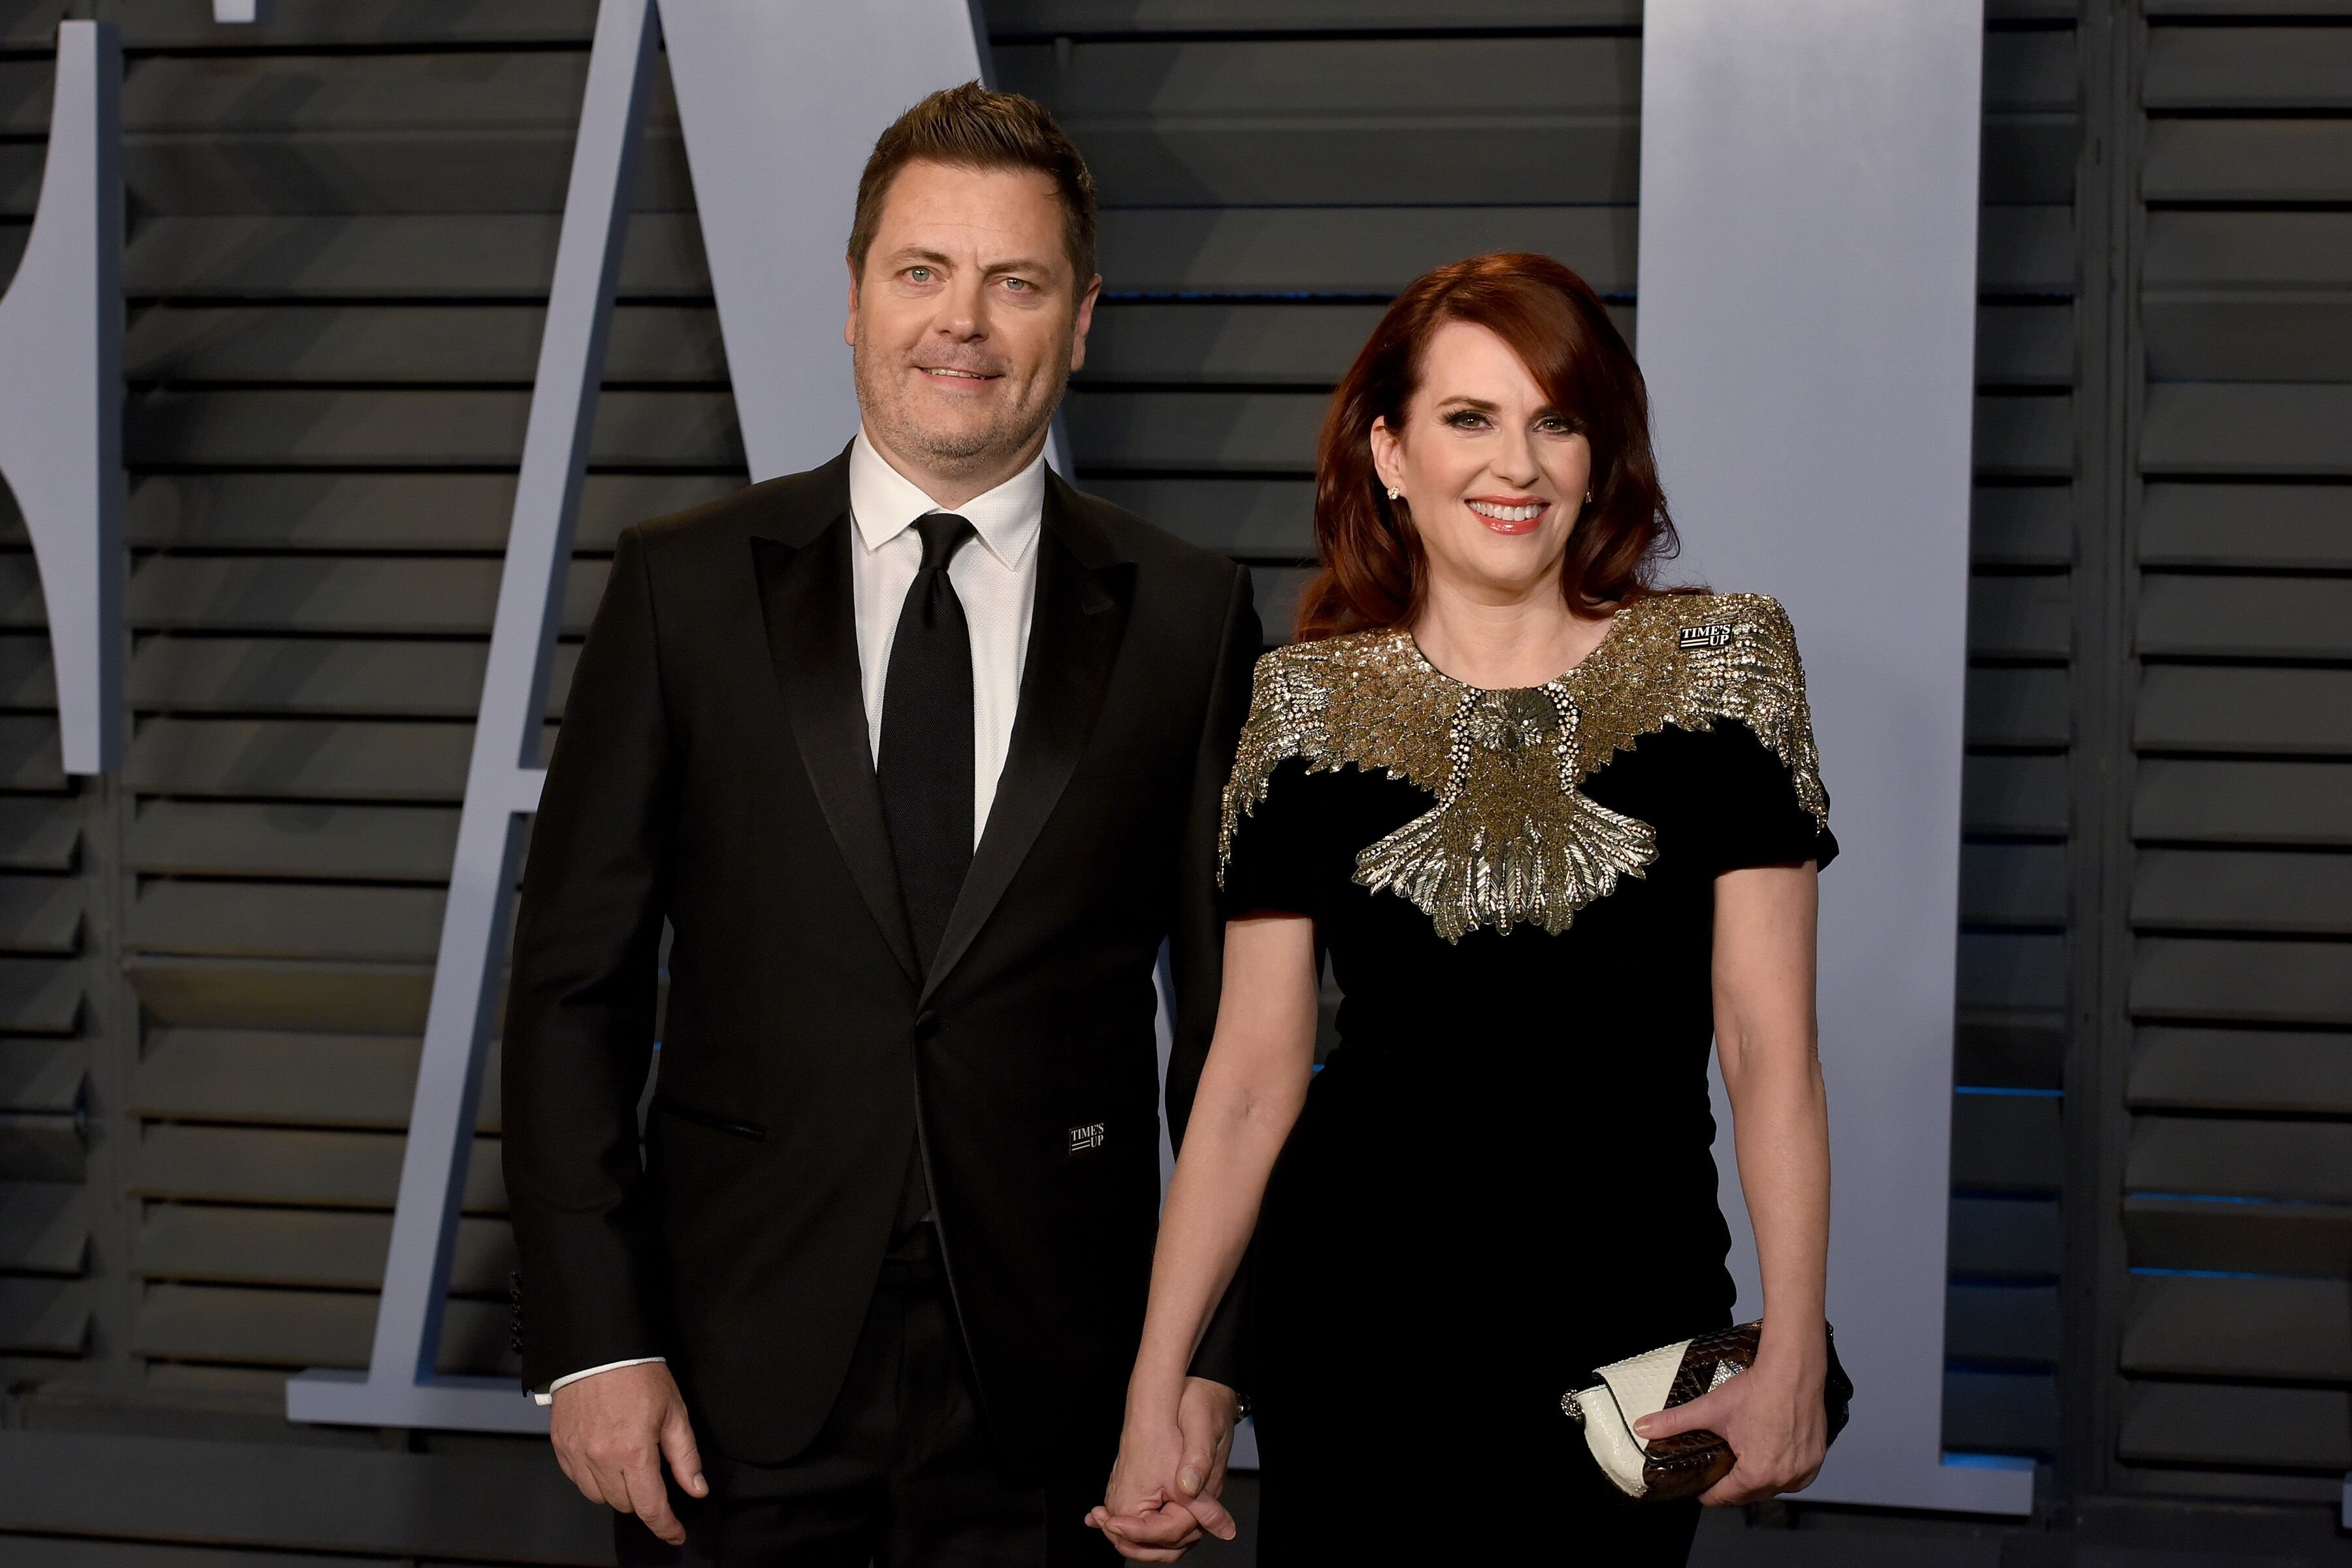 Nick Offerman and Megan Mullally attend the 2018 Vanity Fair Oscar Party in Los Angeles | Source: Getty Images